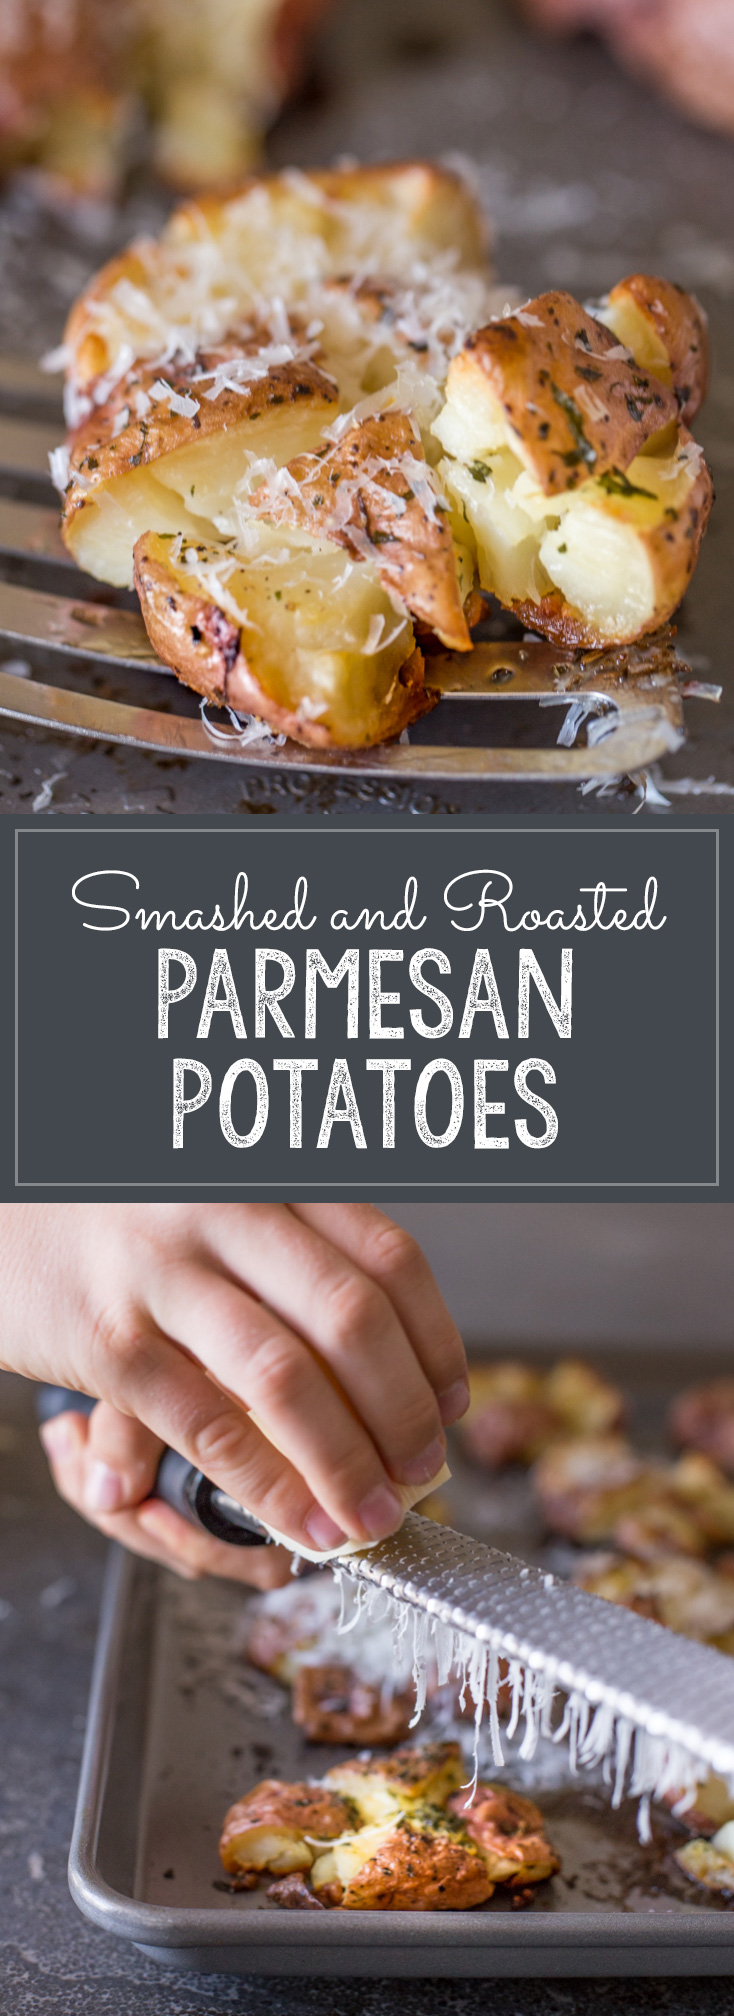 Give boring potatoes a facelift by smashing, adding butter and herbs, and roasting until they are perfectly crisp!